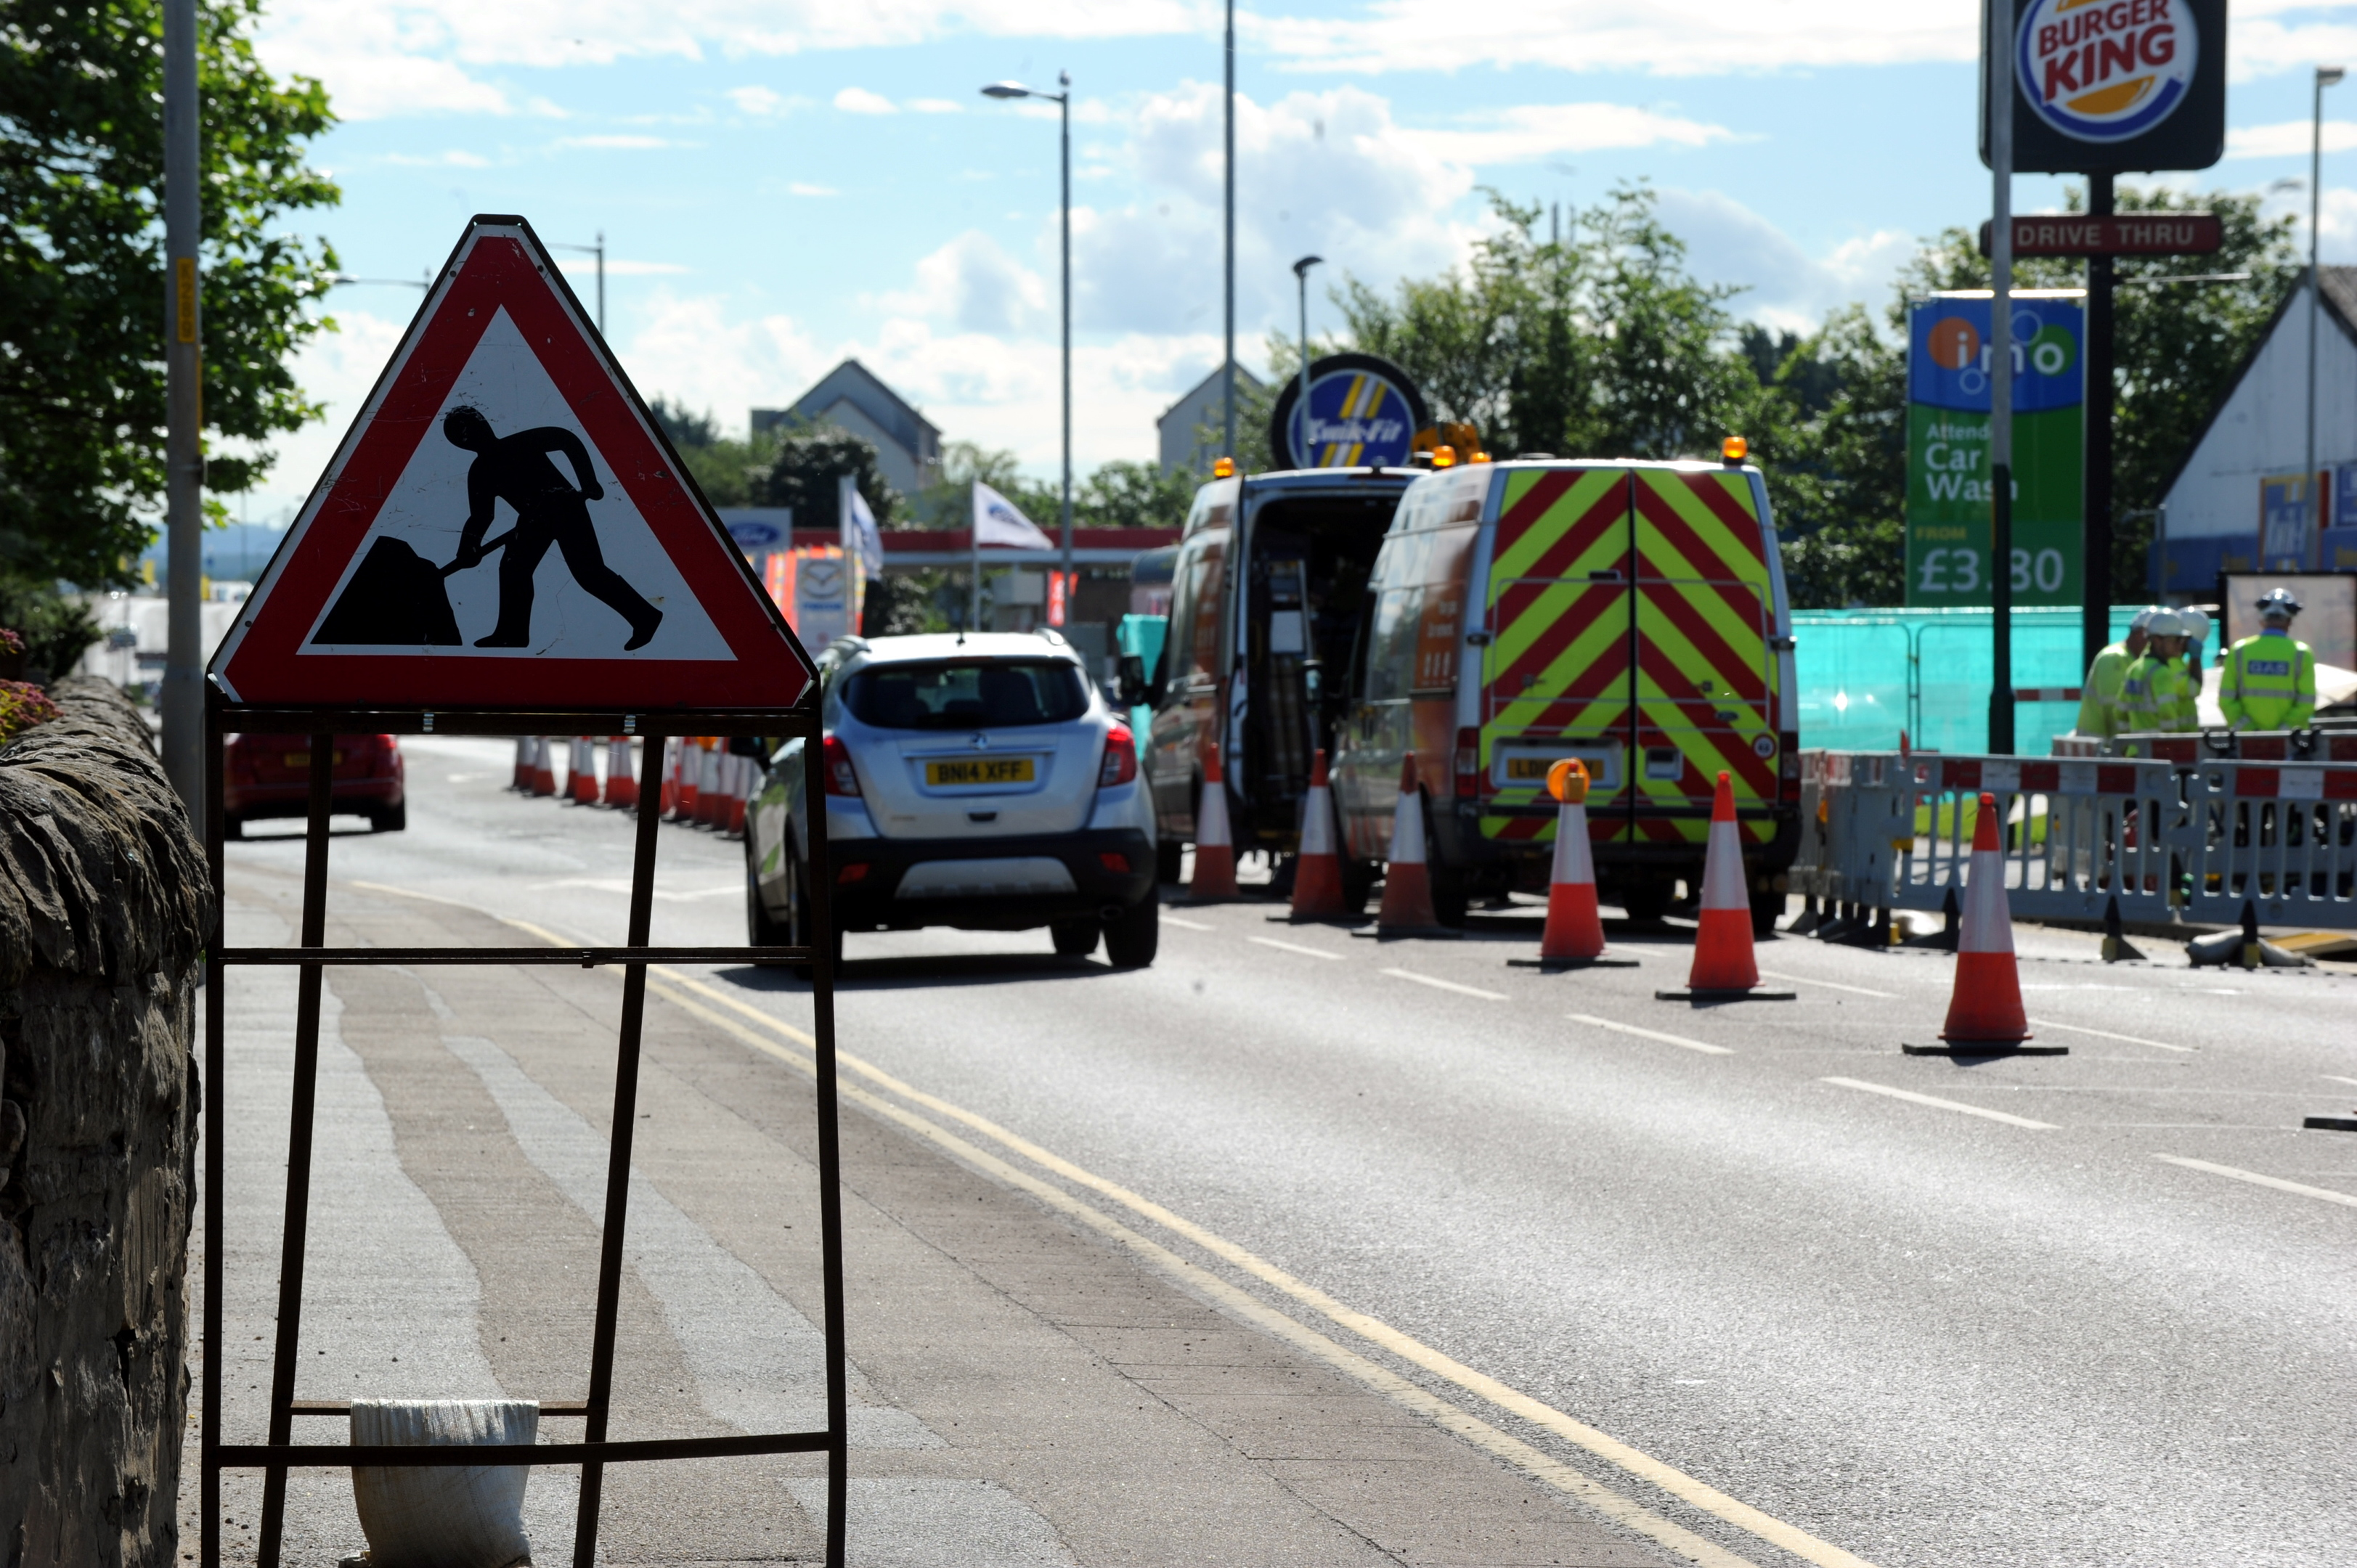 The work will be done on East Road in Elgin.